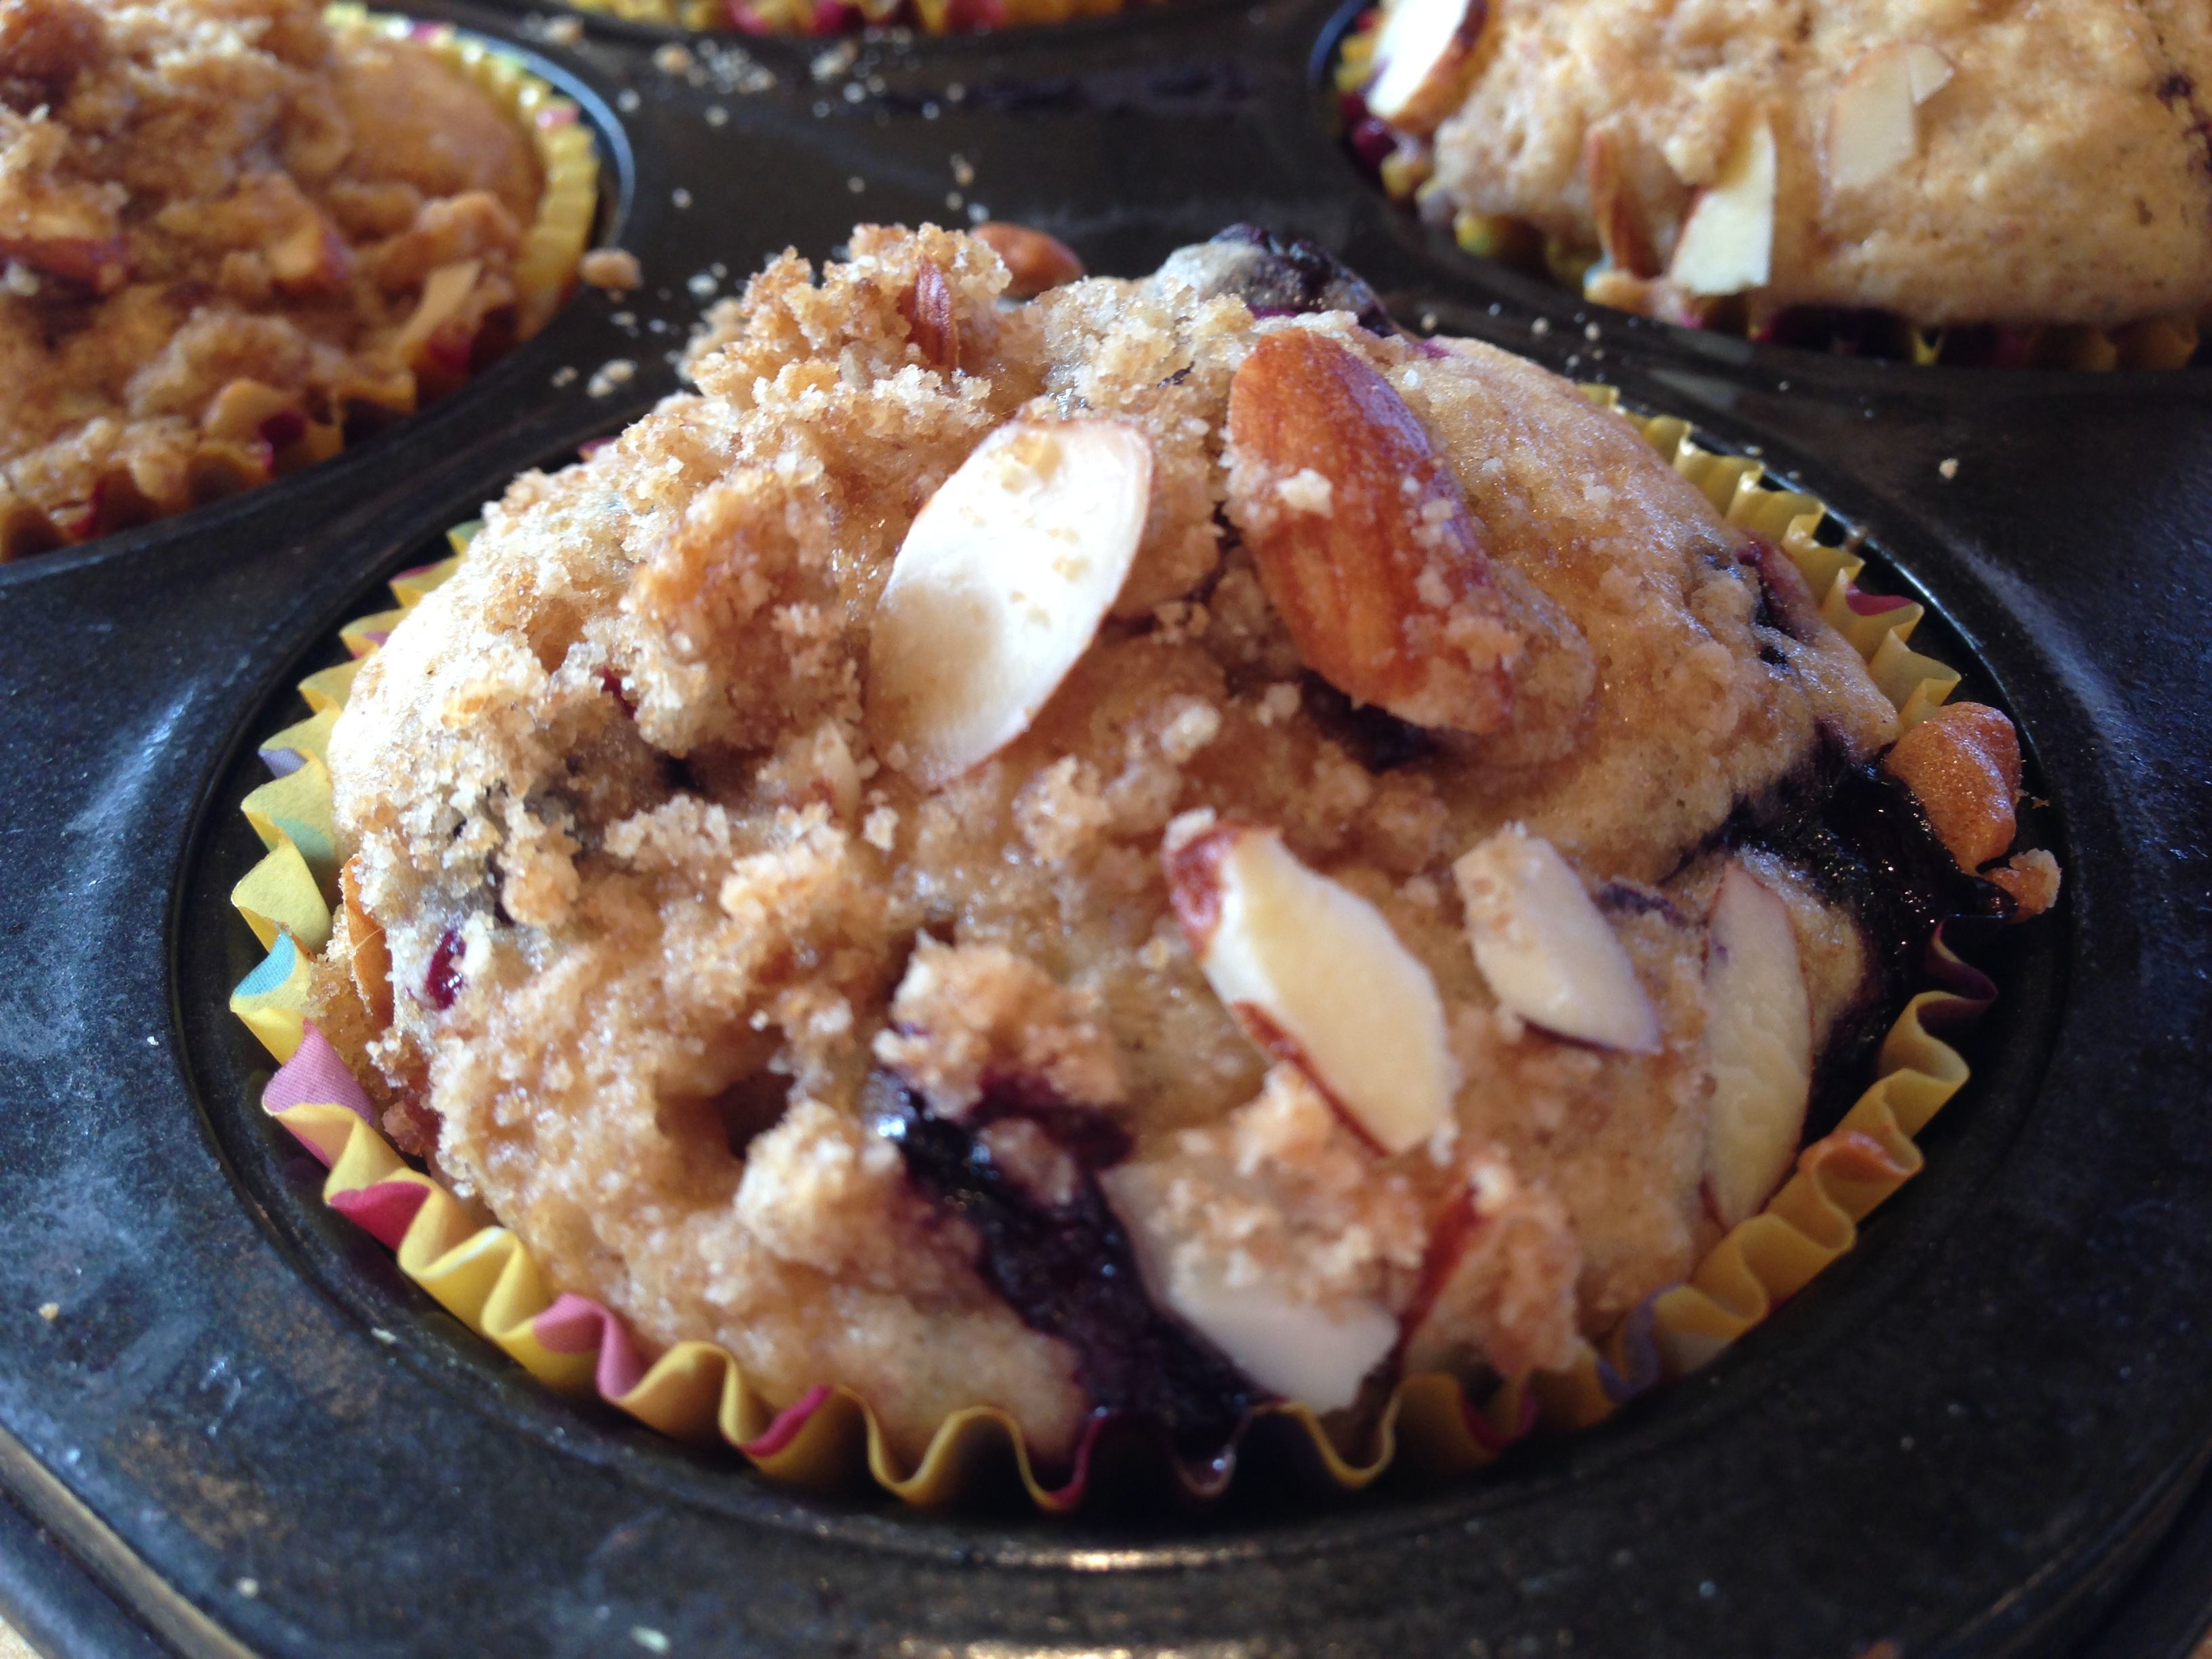 Blueberry Almond Muffins with Streusel Topping | The Brown Lounge